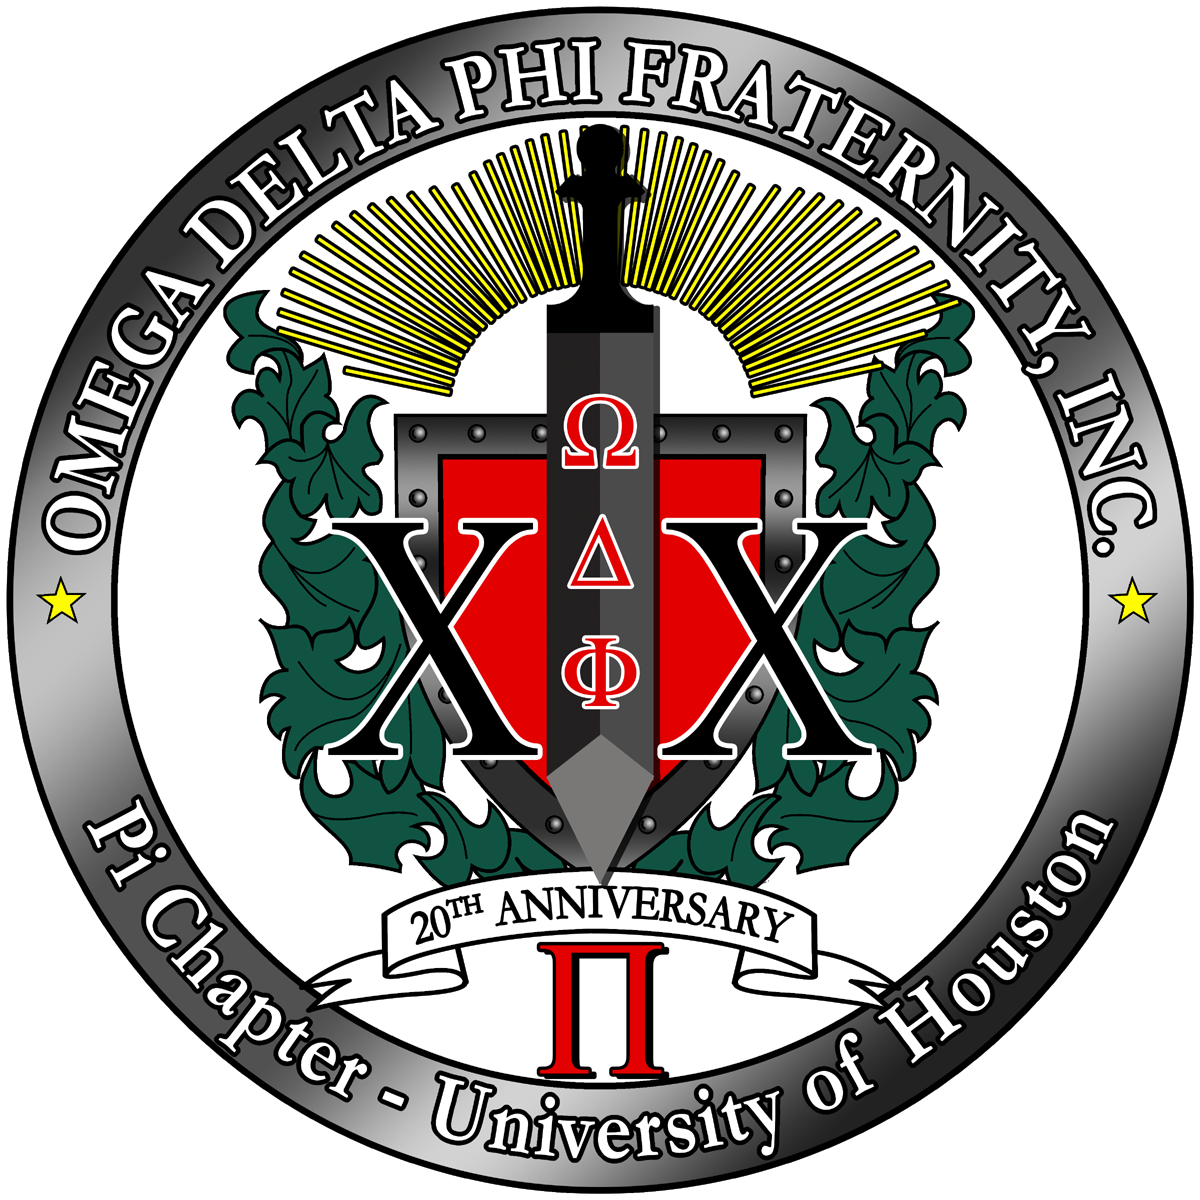 ODPhi Pi Chapter 20th Anniversary logo